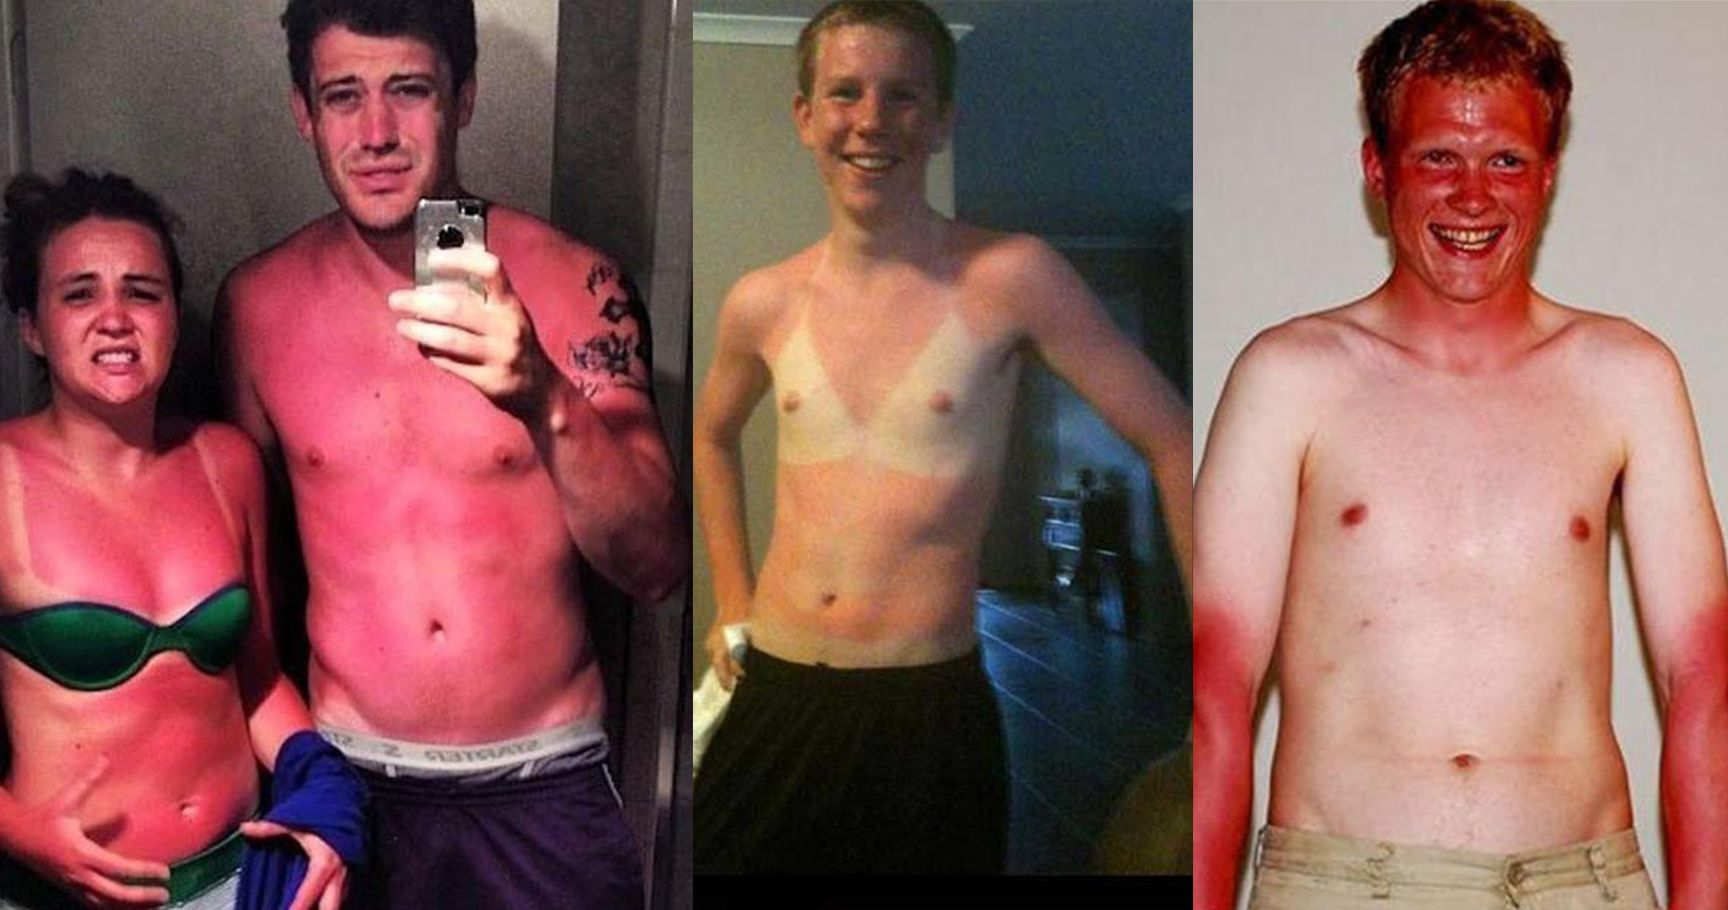 15 Struggles Only Those Who Sunburn Easily Will Understand